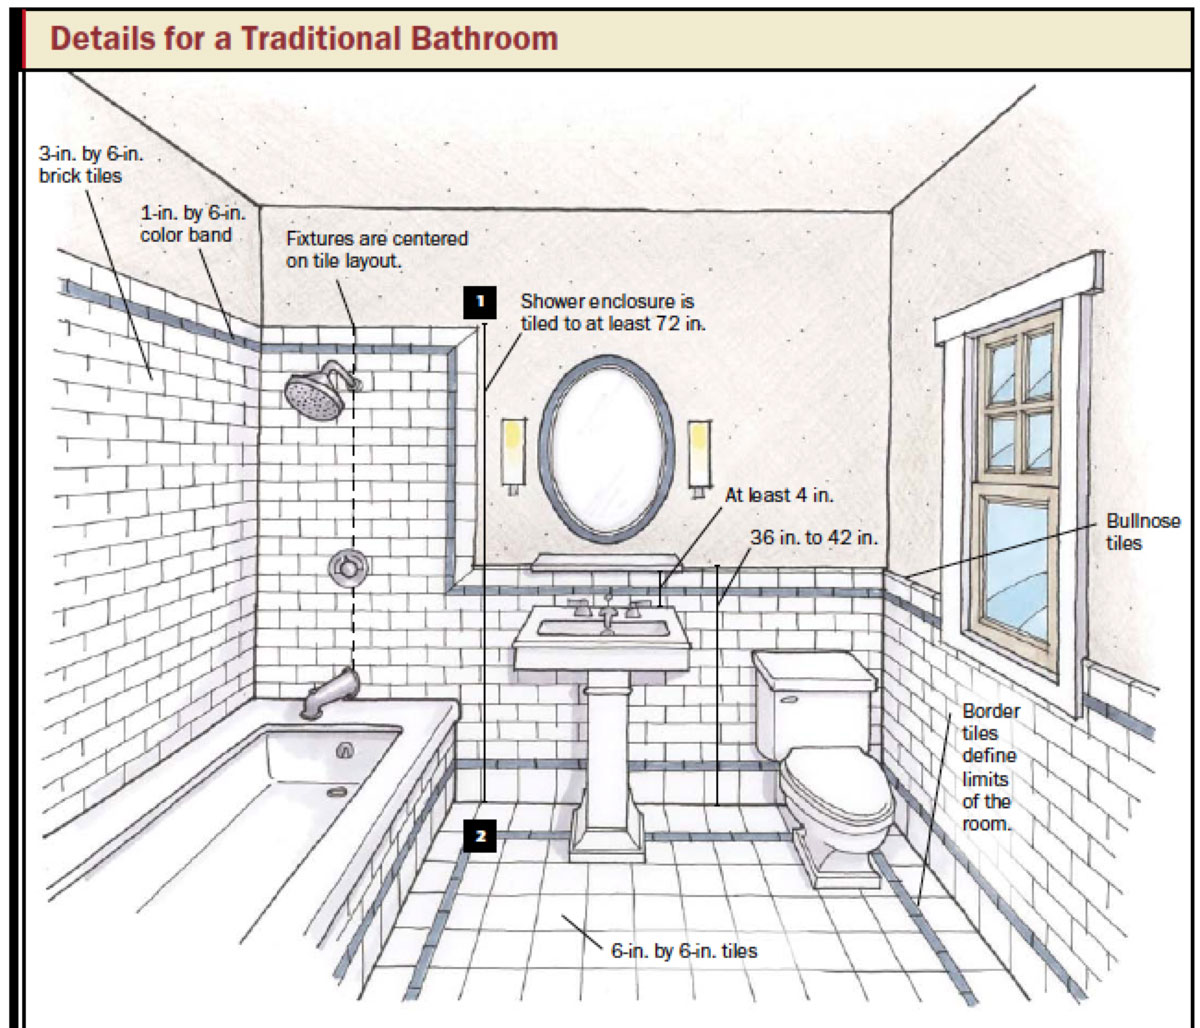 Bathroom design planning tips taymor for Bathroom designs plans layouts